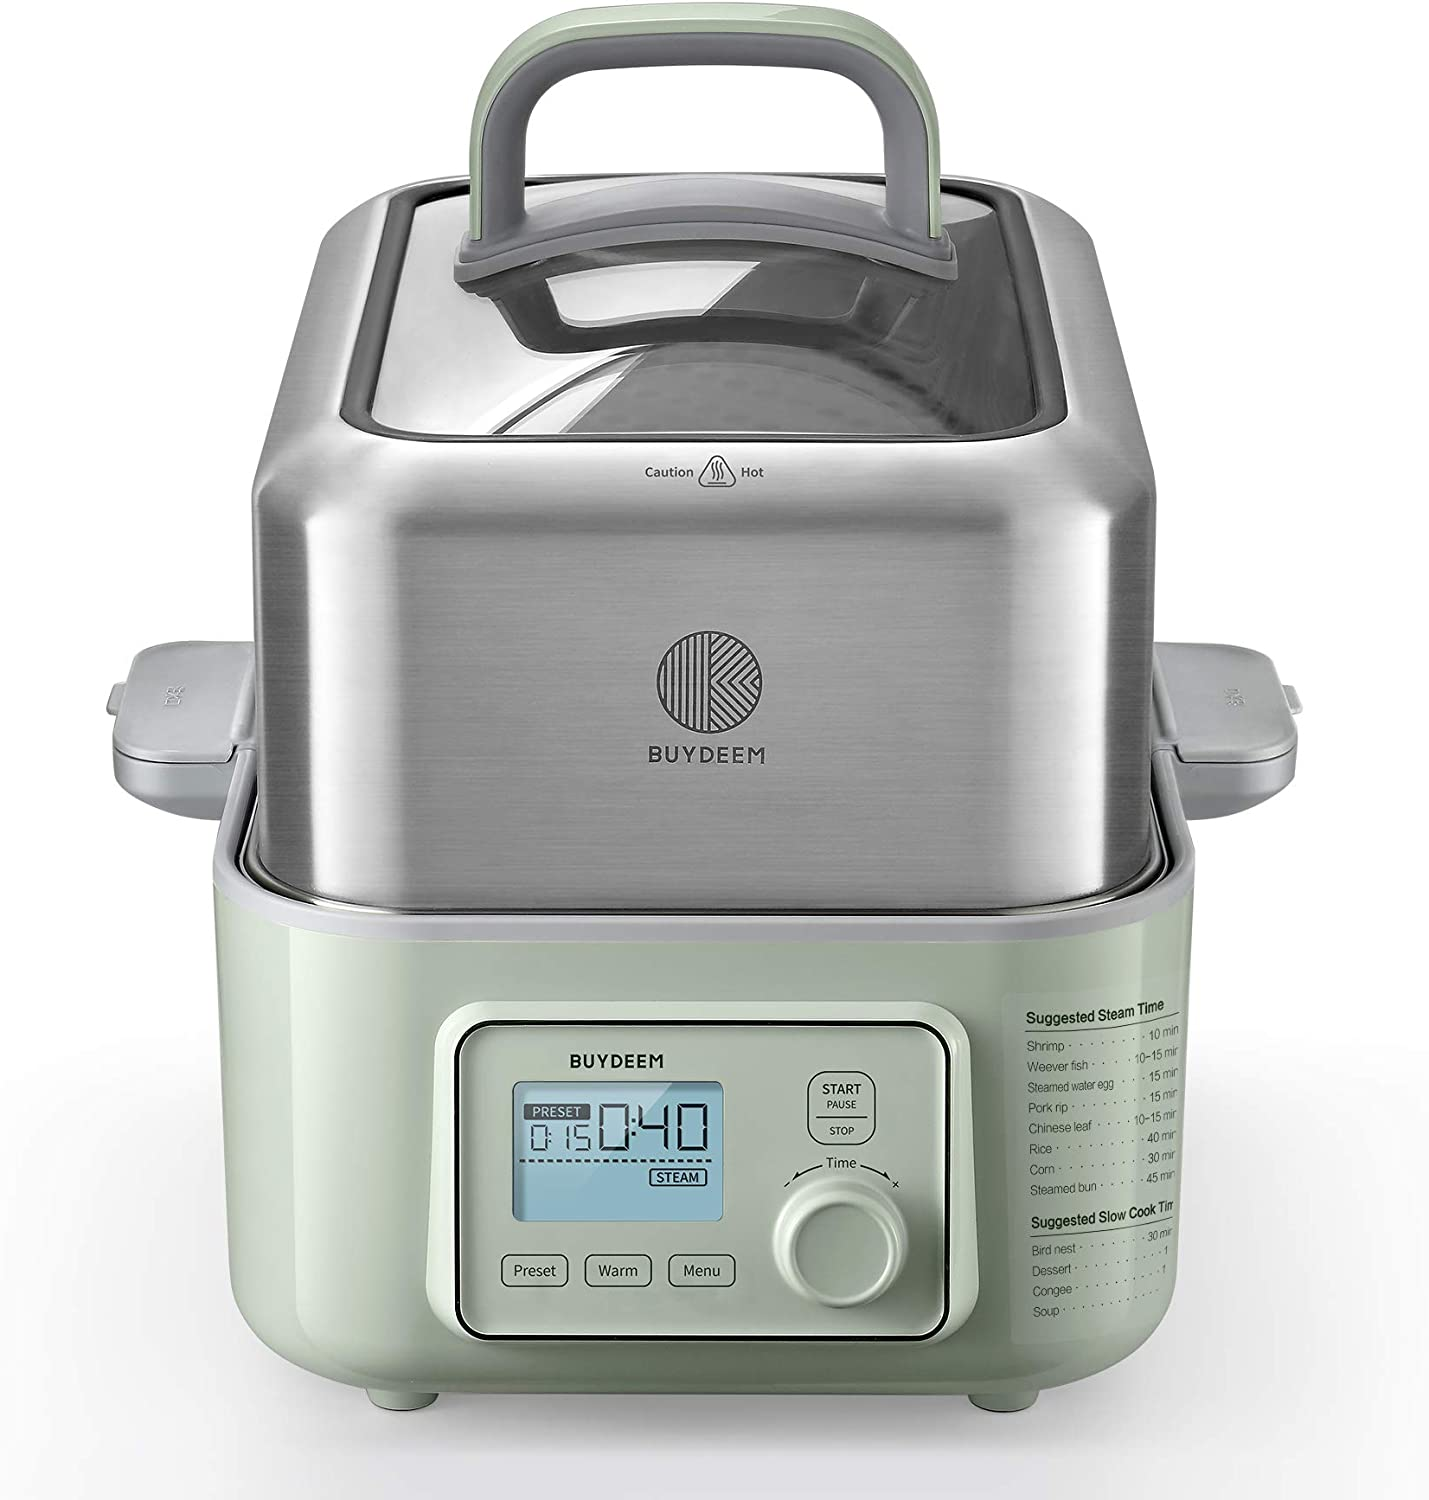 BUYDEEM G563 5-Quart Electric Food Steamer for Cooking, One Touch Vegetable Steamer, Digital Multifunctional Steamer, Quick Steam in 60s, Stainless Steel & Glass Lid, Cozy Greenish, 1500W